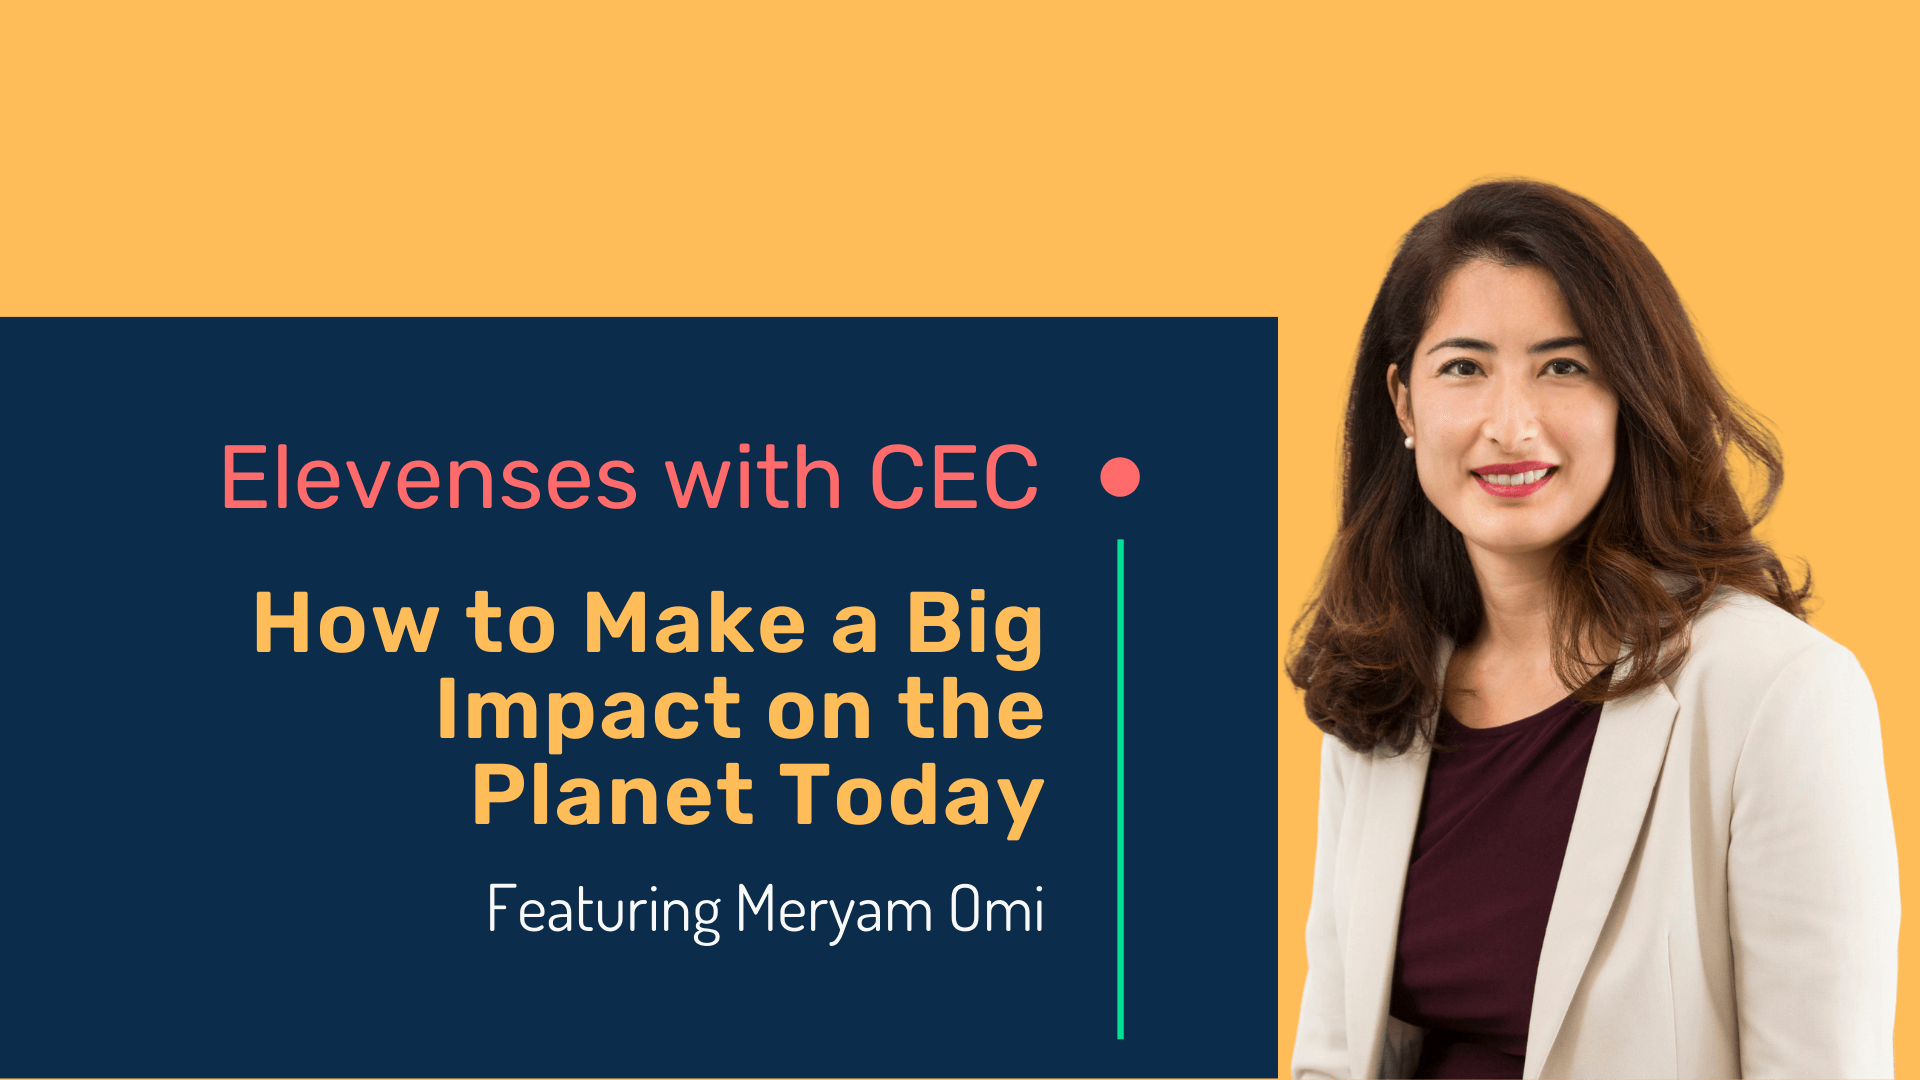 How to make a big impact on the planet today